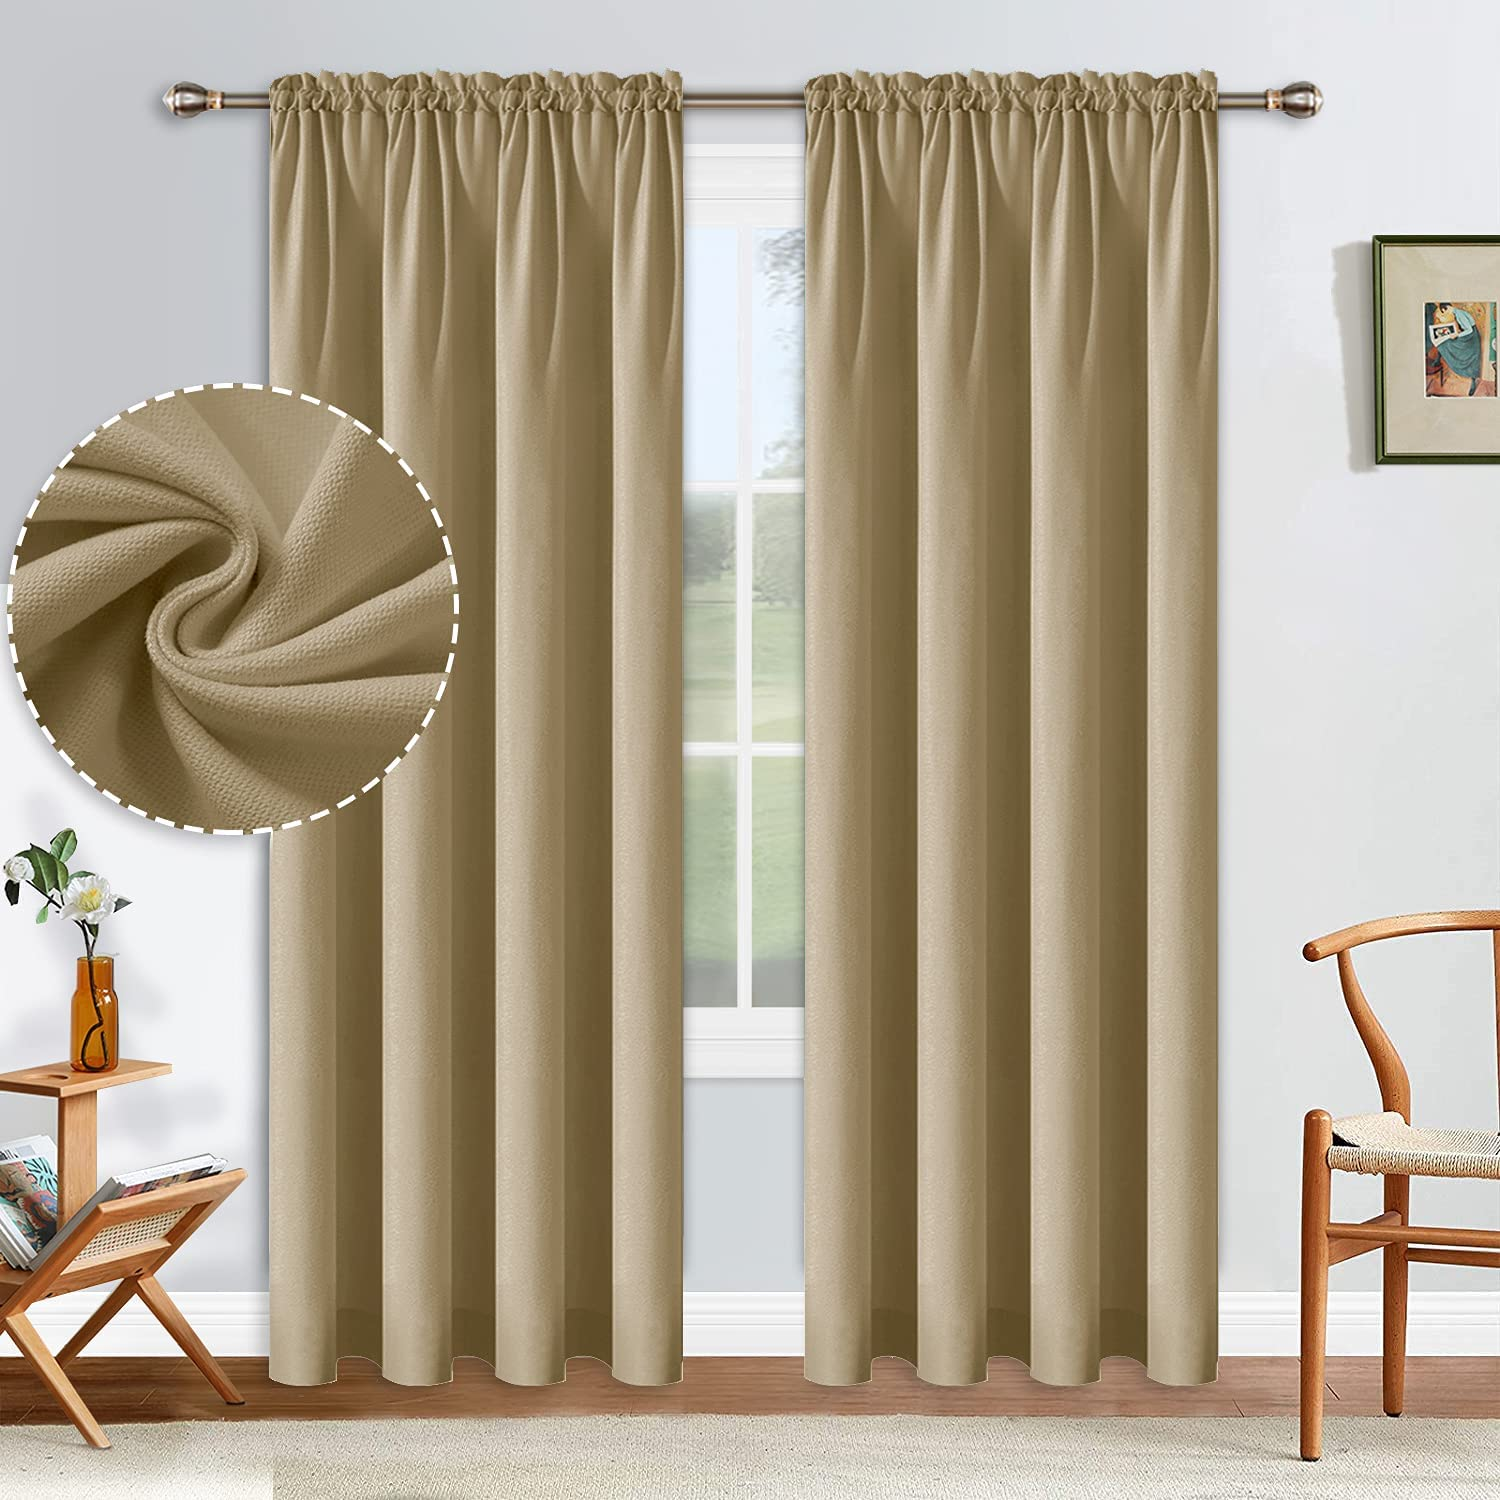 ALLJOY 84 Cheap mail order sales Inches Long Room Popular products Thermal Curtains Insulated Darkening